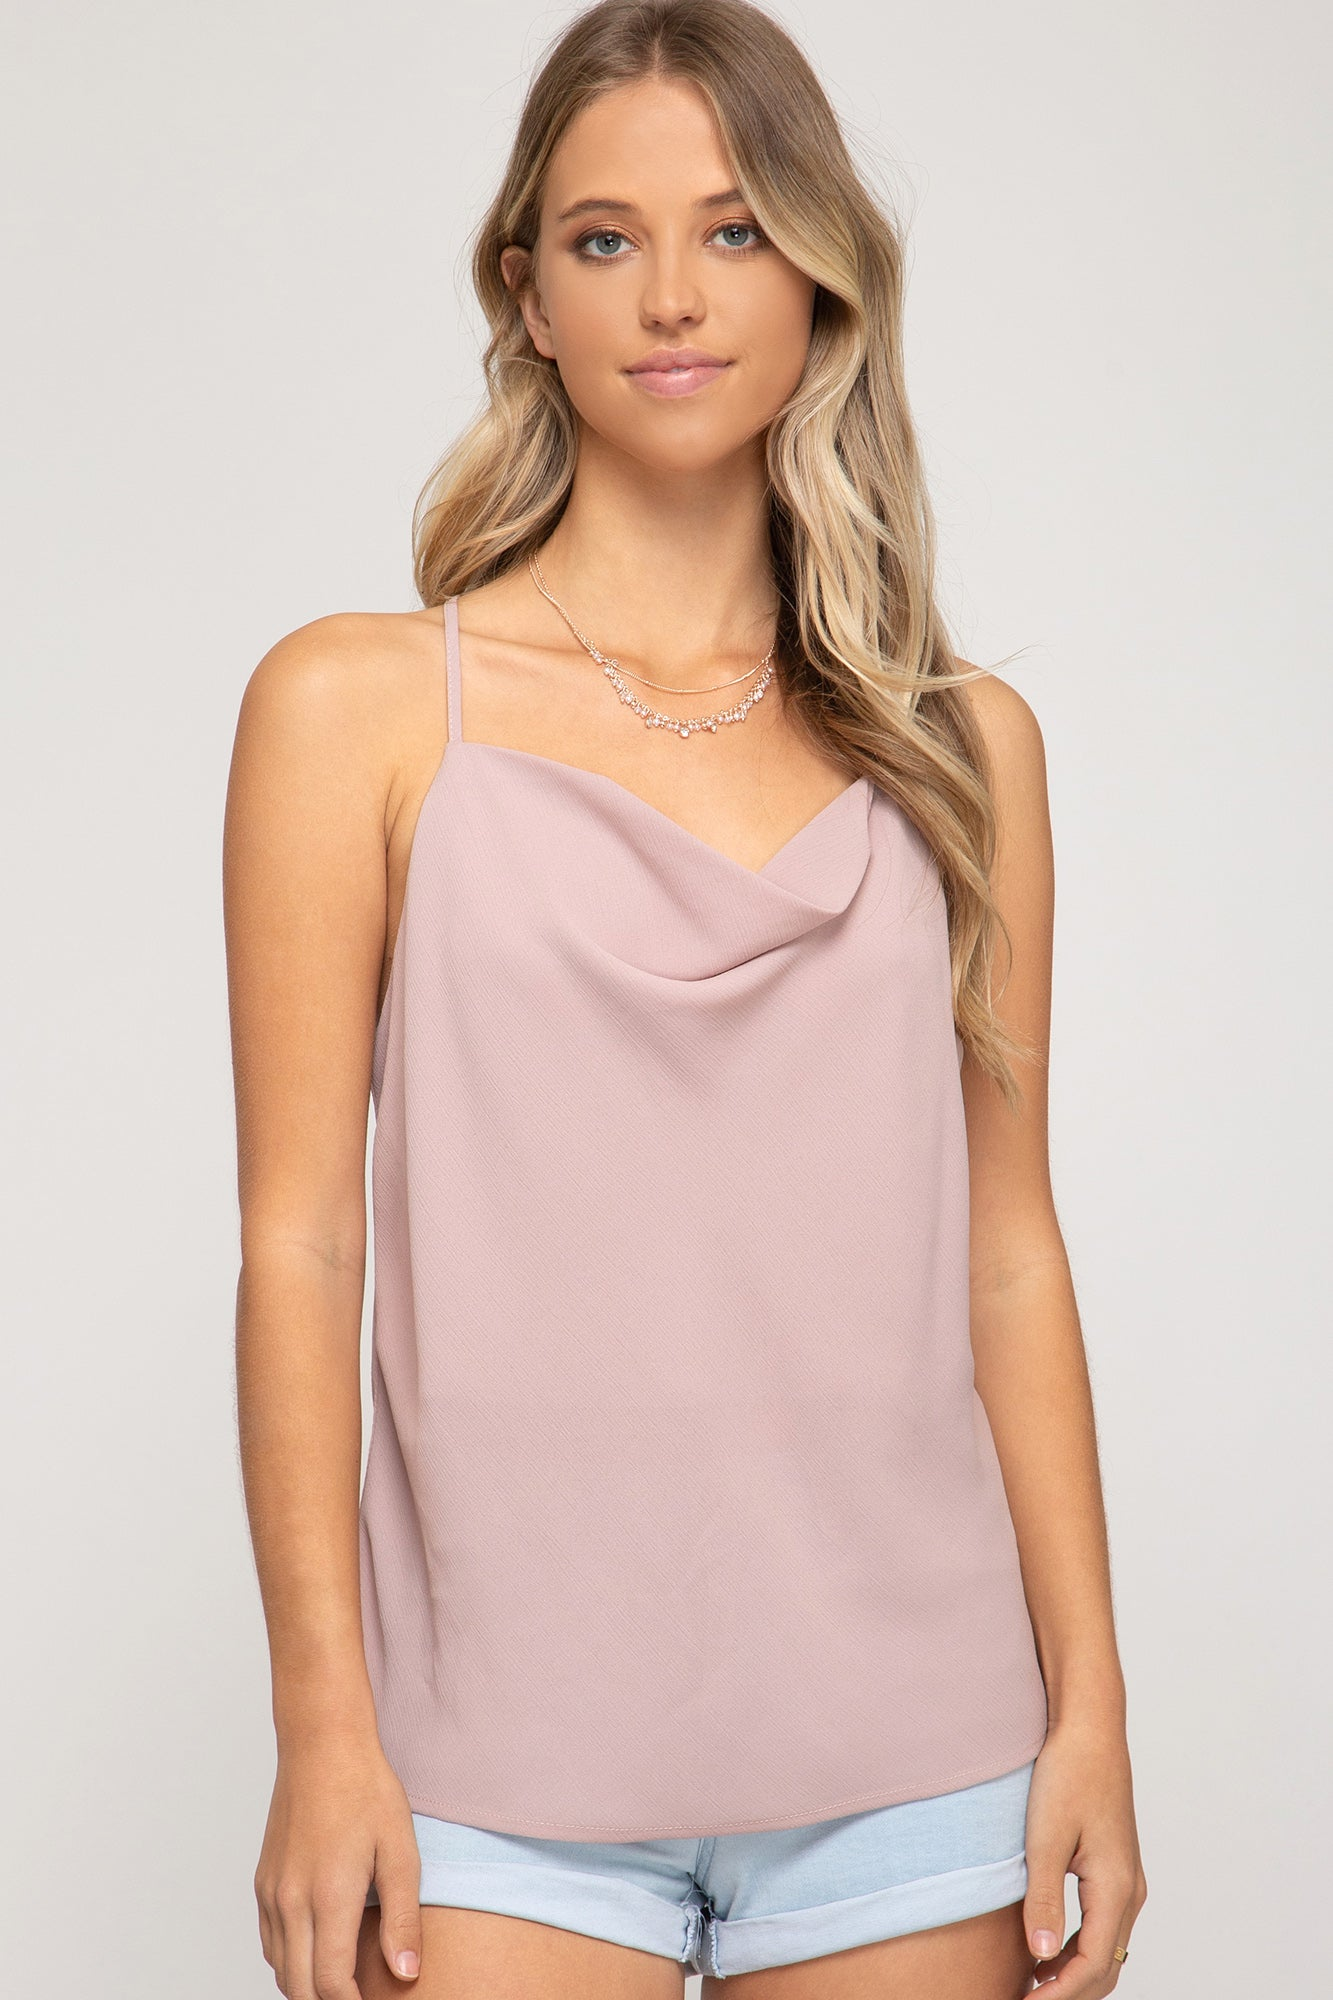 Poppy Cowl Neck Tank Top - Other Colors Available